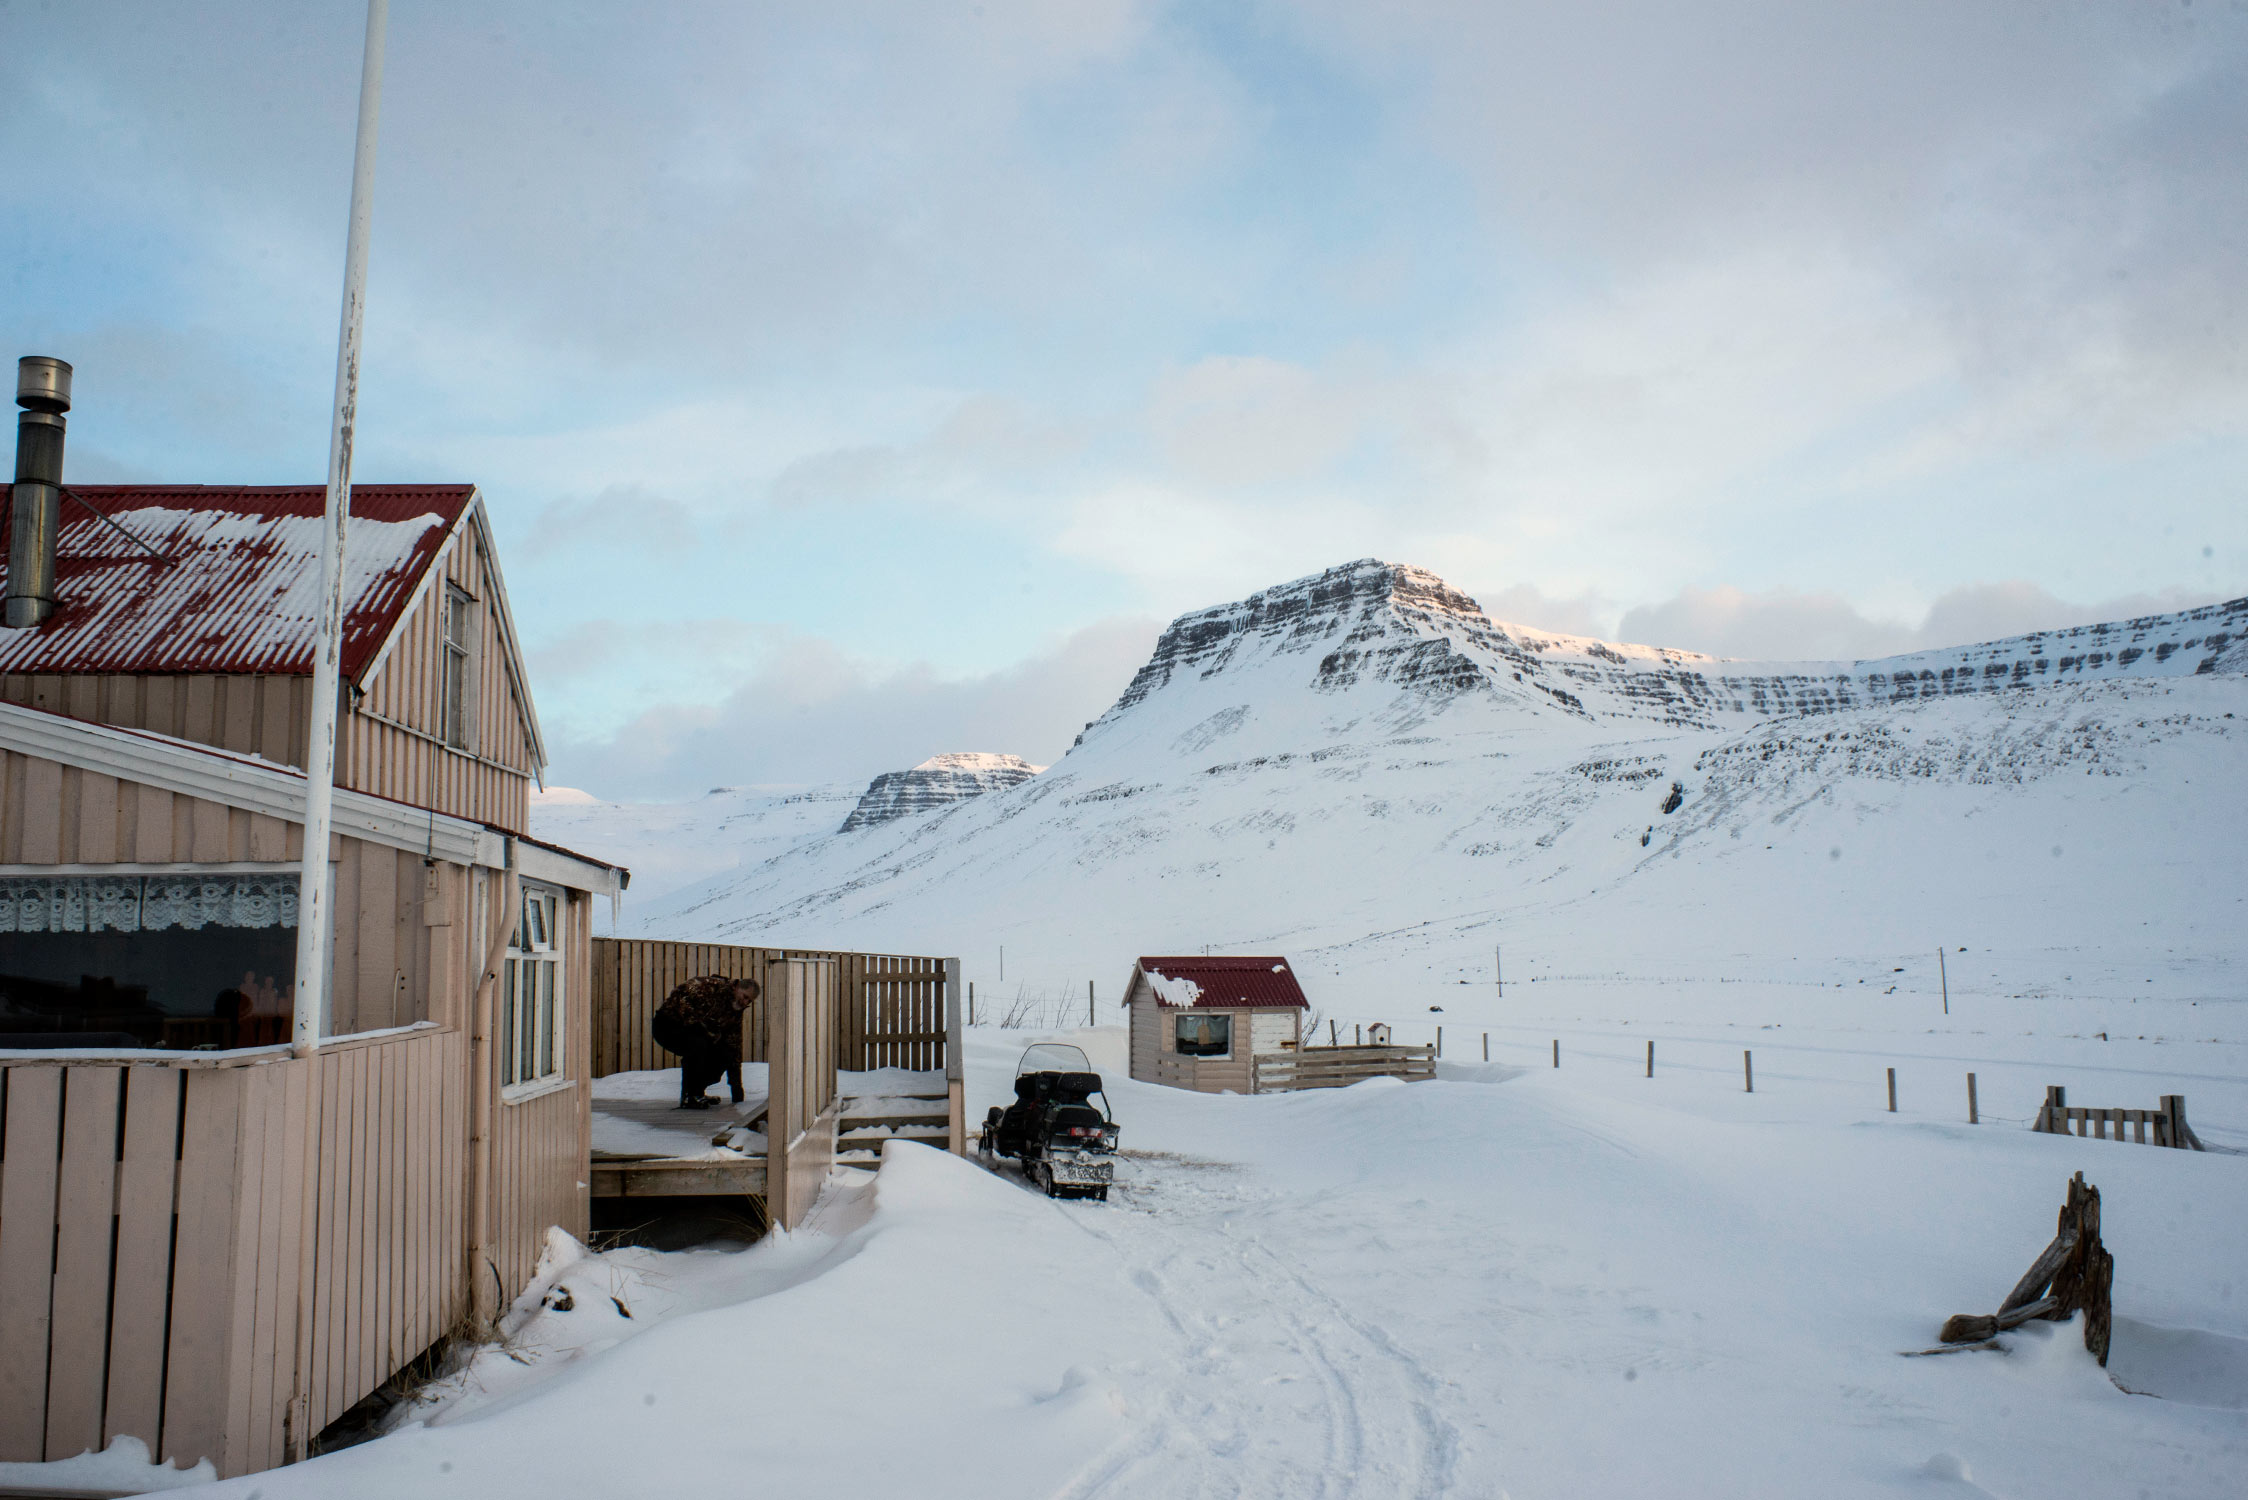 An Icelandic hunter, Jóhann Hannibalsson, at a remote cabin where he intends to shoot a fox.